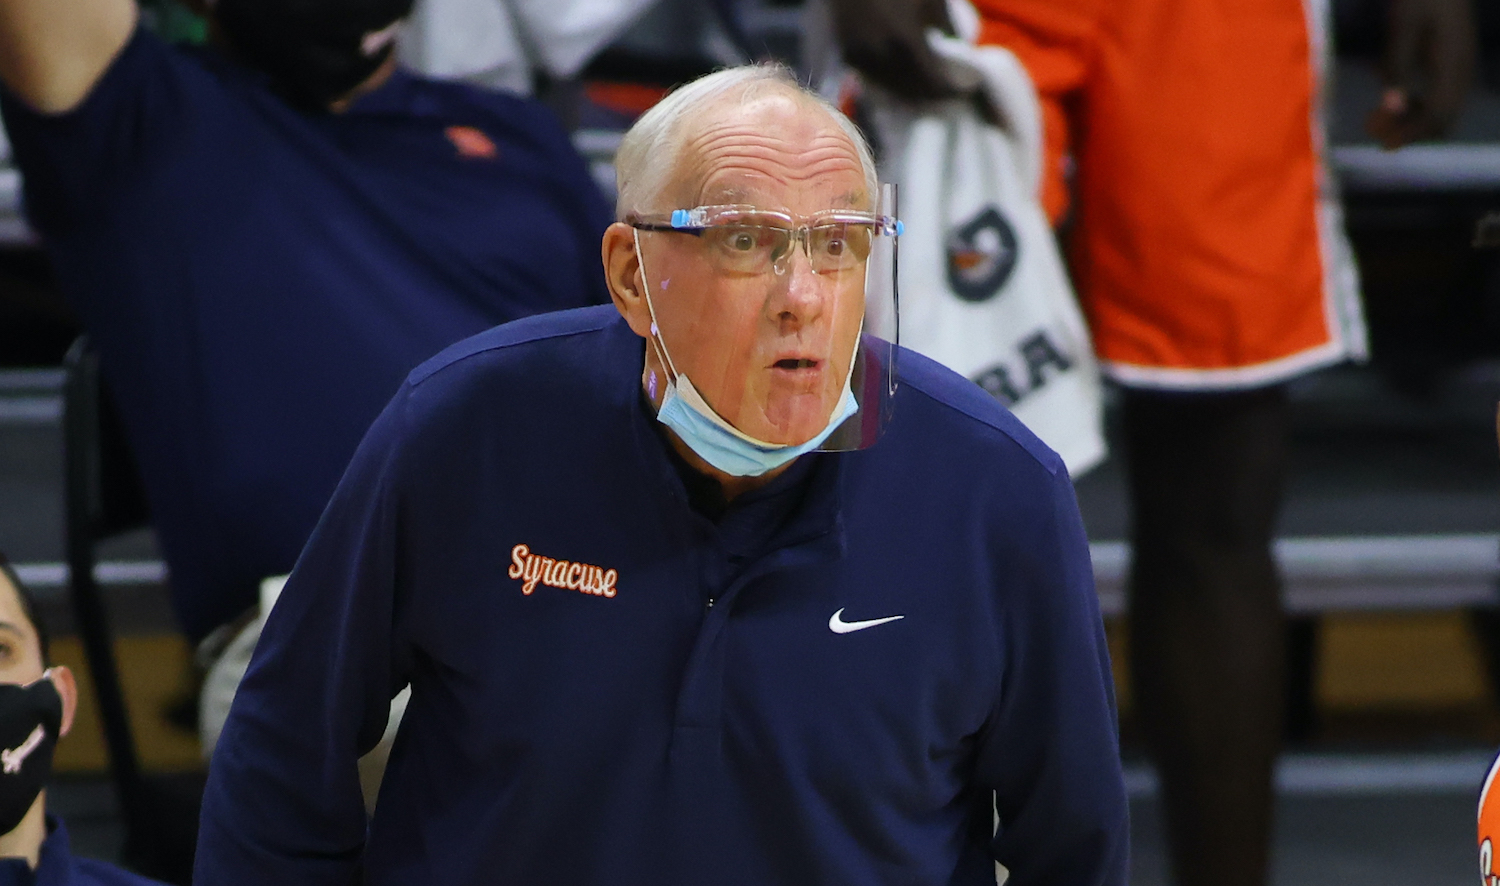 PISCATAWAY, NJ - DECEMBER 08: Head coach Jim Boeheim of the Syracuse Orange talks to Quincy Guerrier #1 during the second half of an NCAA basketball game against the Rutgers Scarlet Knights at Rutgers Athletic Center on December 8, 2020 in Piscataway, New Jersey. Rutgers defeated Syracuse 79-69. (Photo by Rich Schultz/Getty Images)